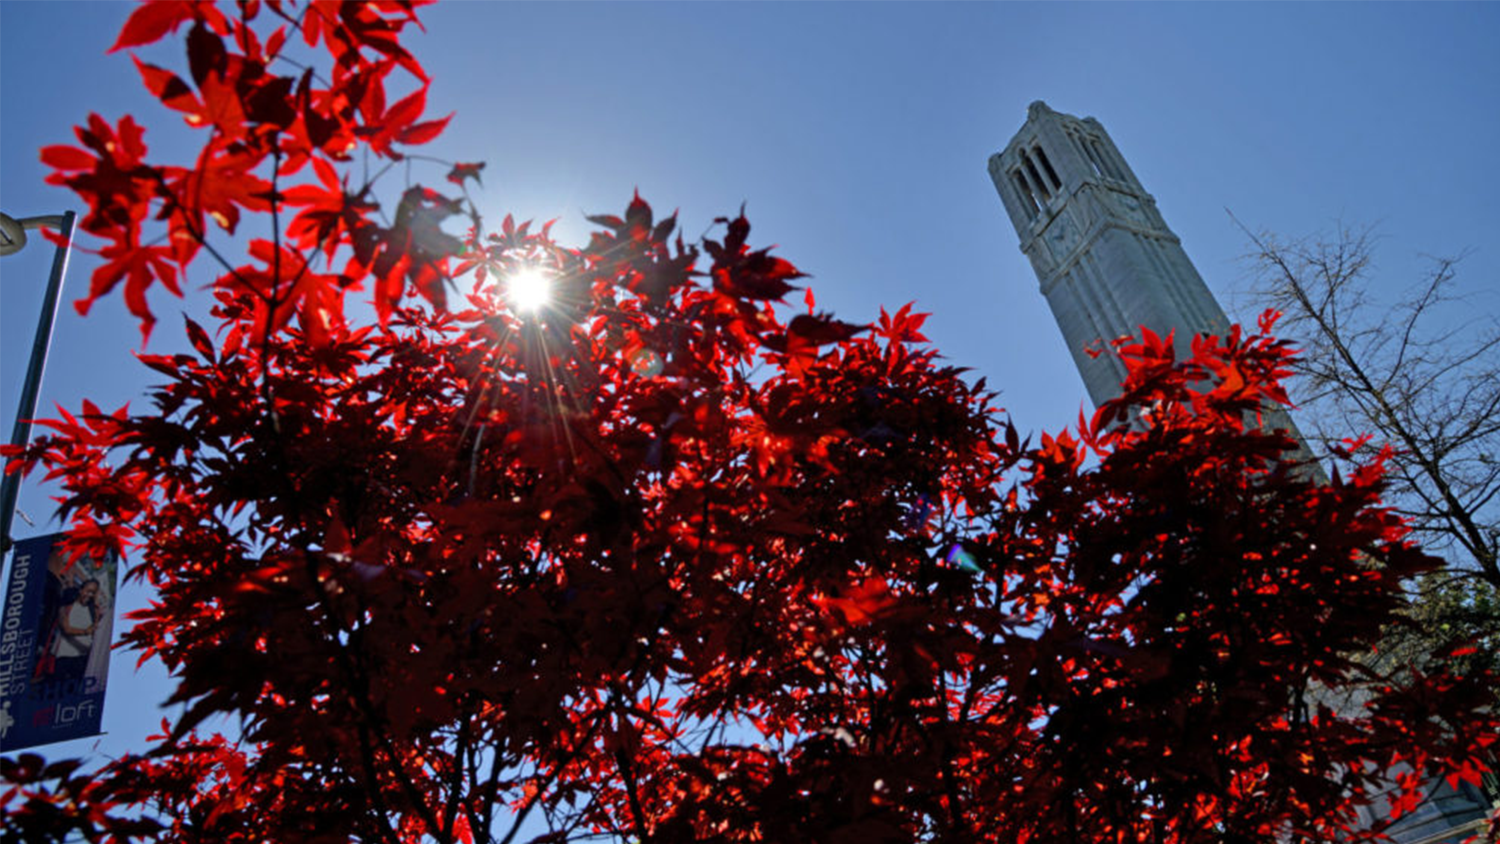 NC State belltower with red leaves